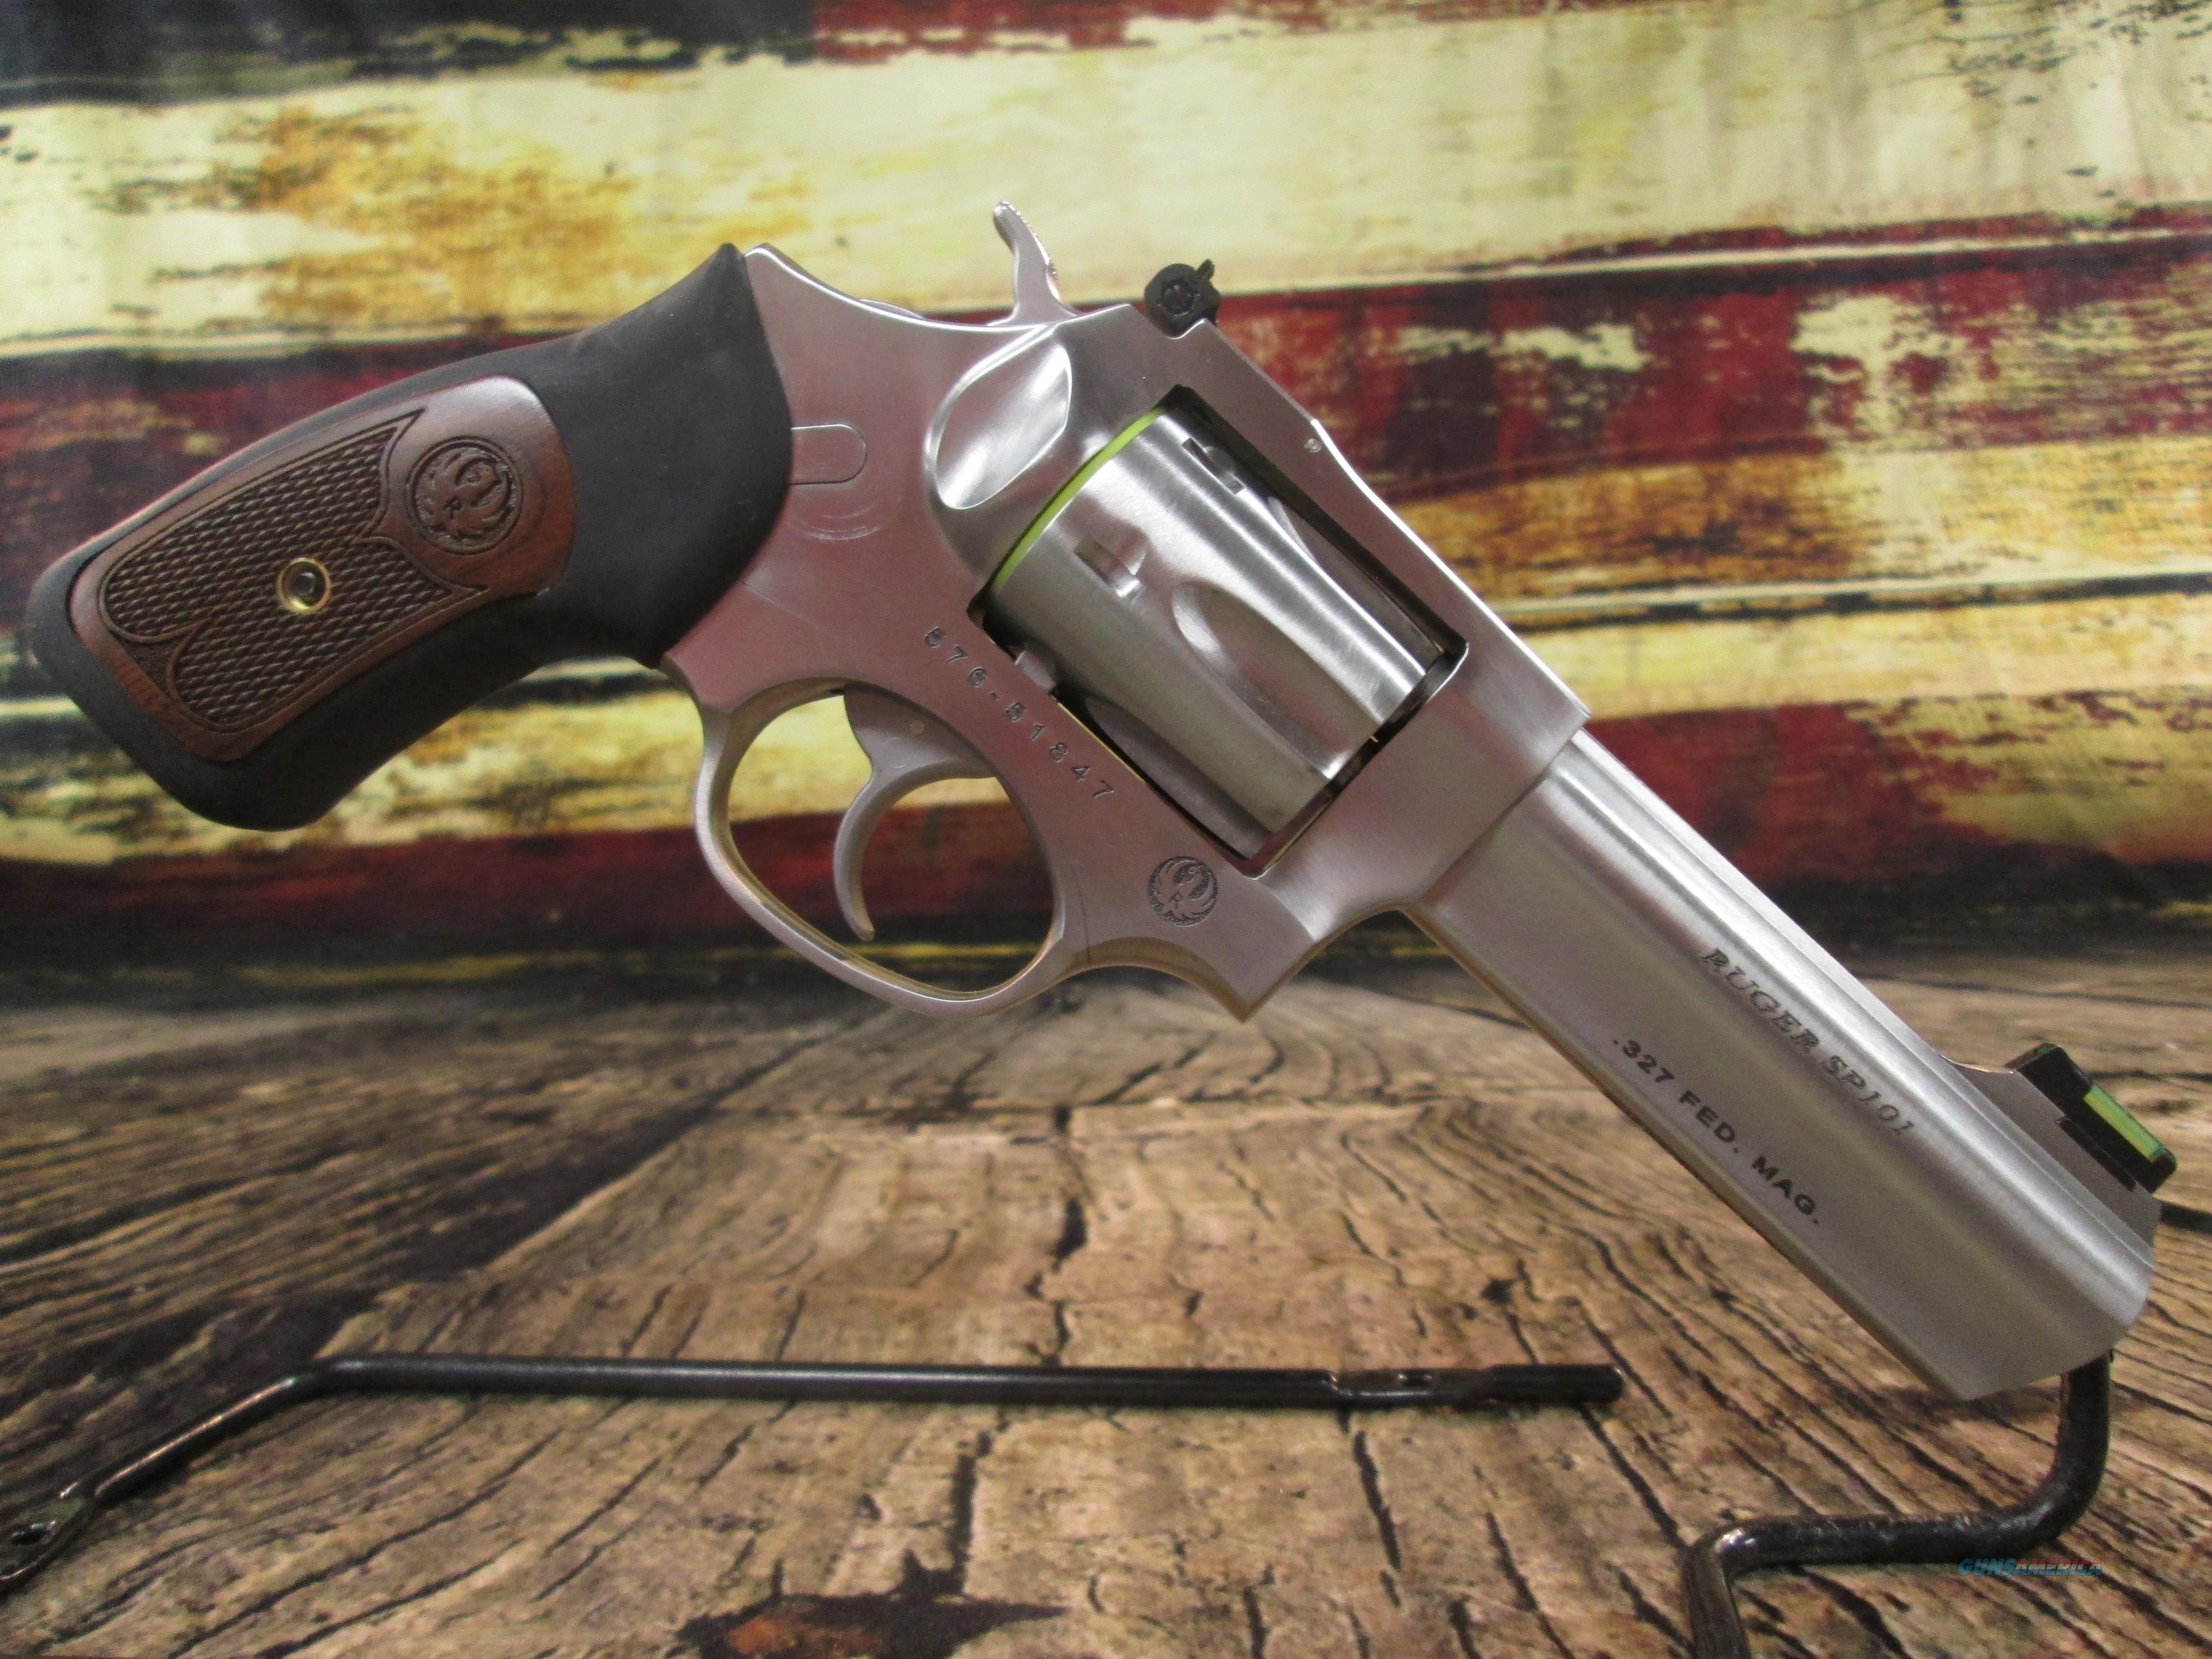 RUGER SP101 STAINLESS 327 FEDERAL 6 SHOT NEW (05773)  Guns > Pistols > Ruger Double Action Revolver > SP101 Type